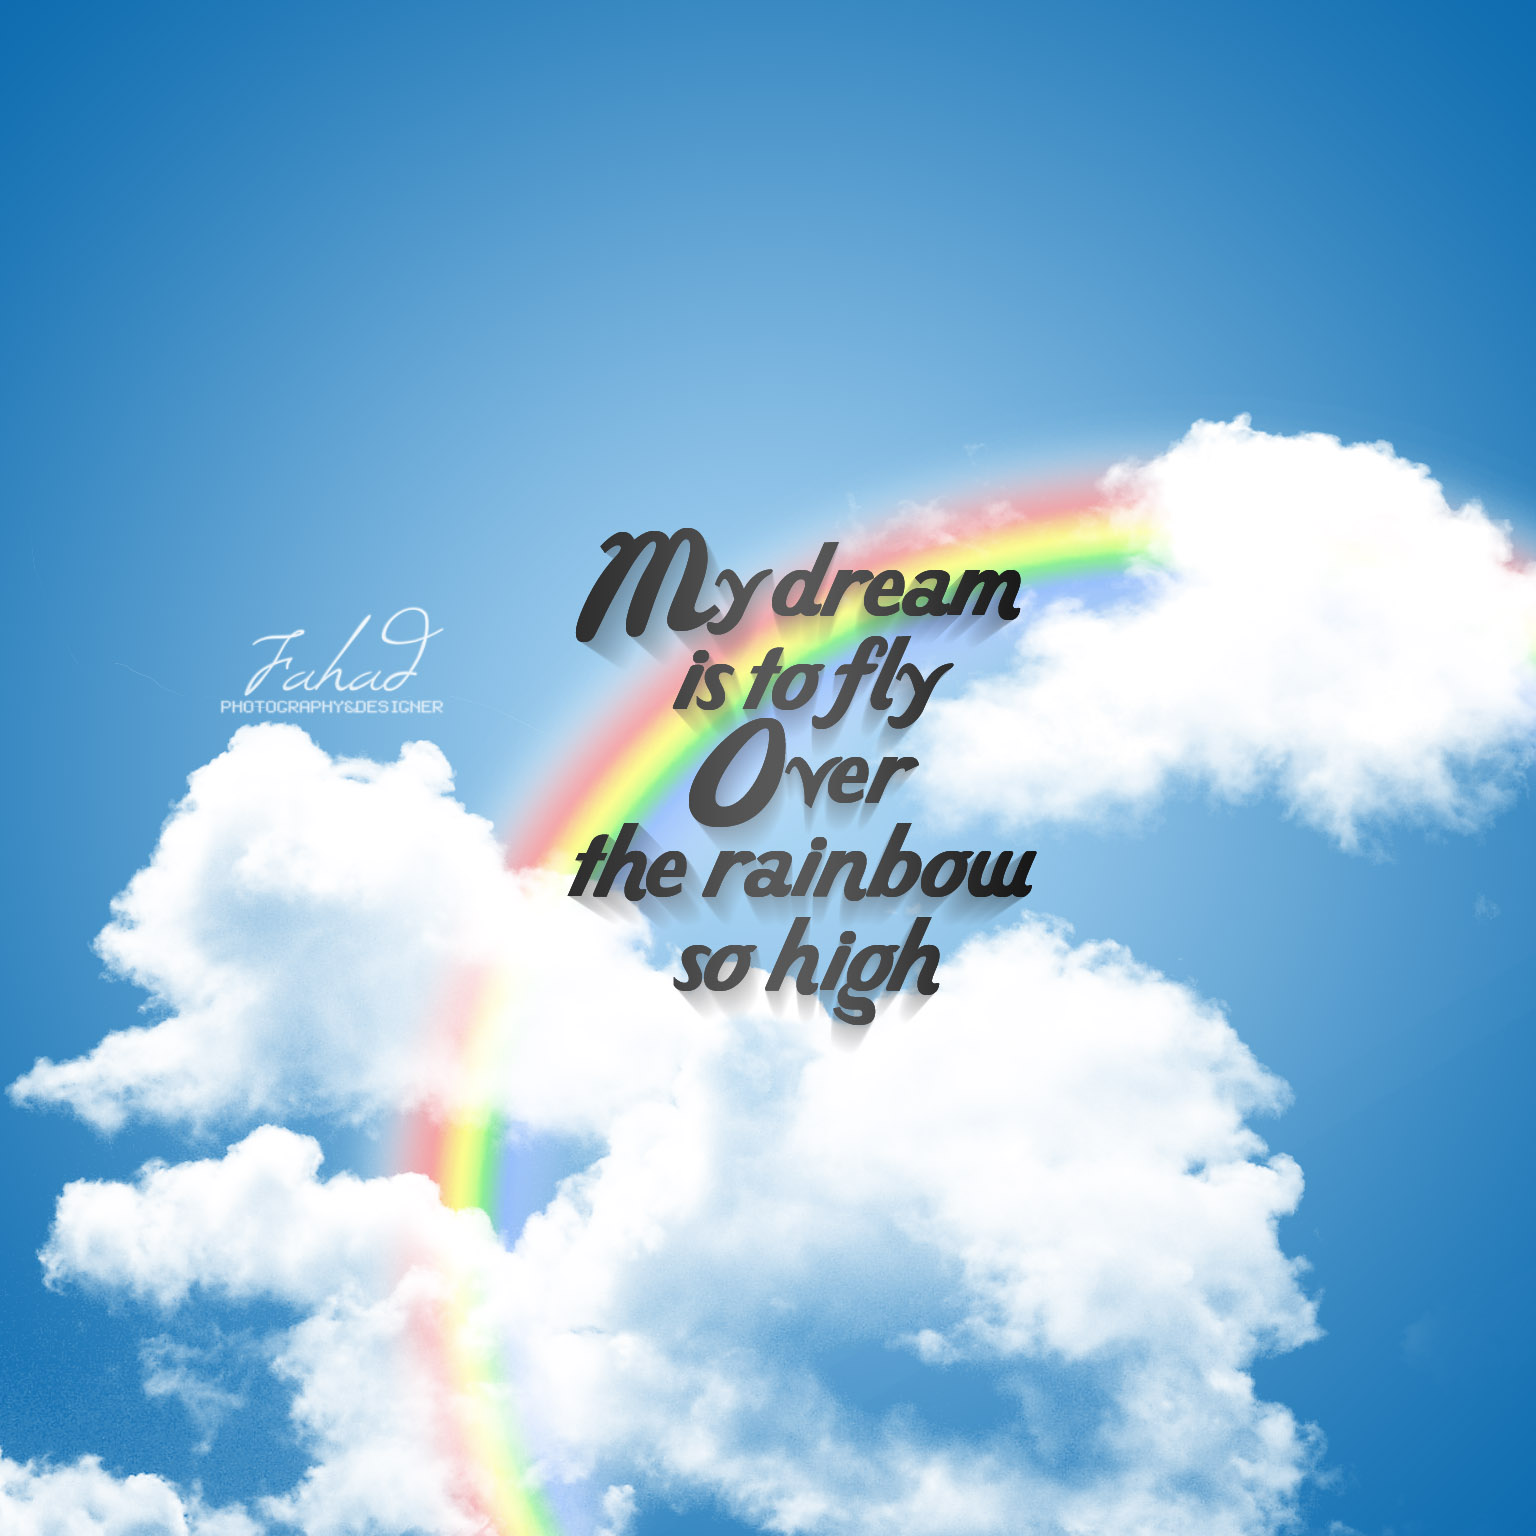 dream_to_fly_by_fahadsaud-d5a9awh Verwunderlich so where Over the Rainbow Dekorationen